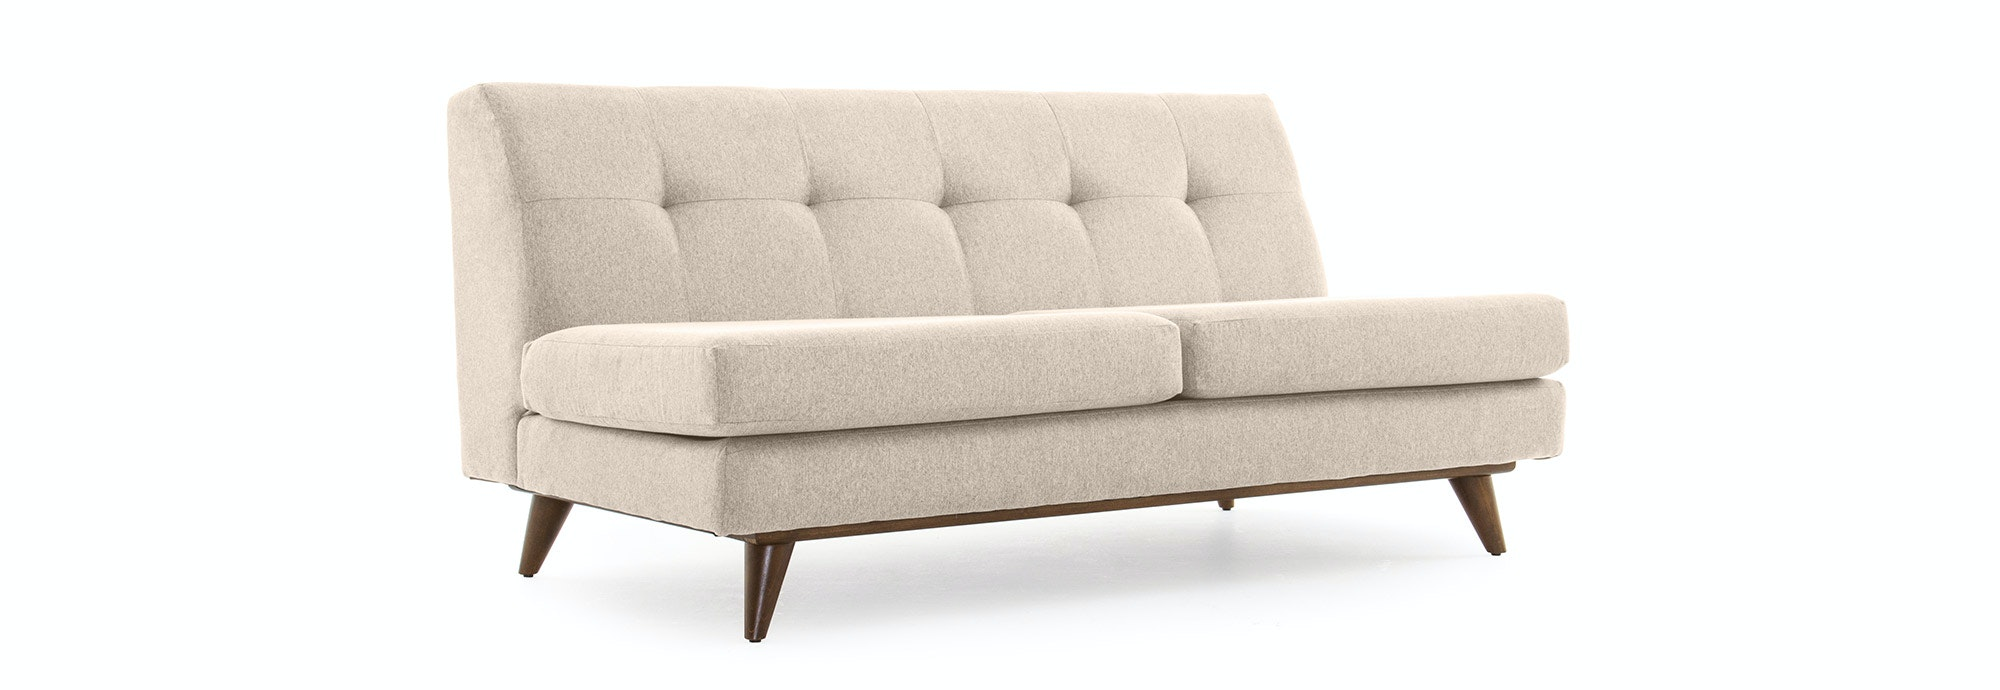 Armless Loveseat With Tufted Armless Loveseat For Modern Living Room Decor Awesome And Cozy